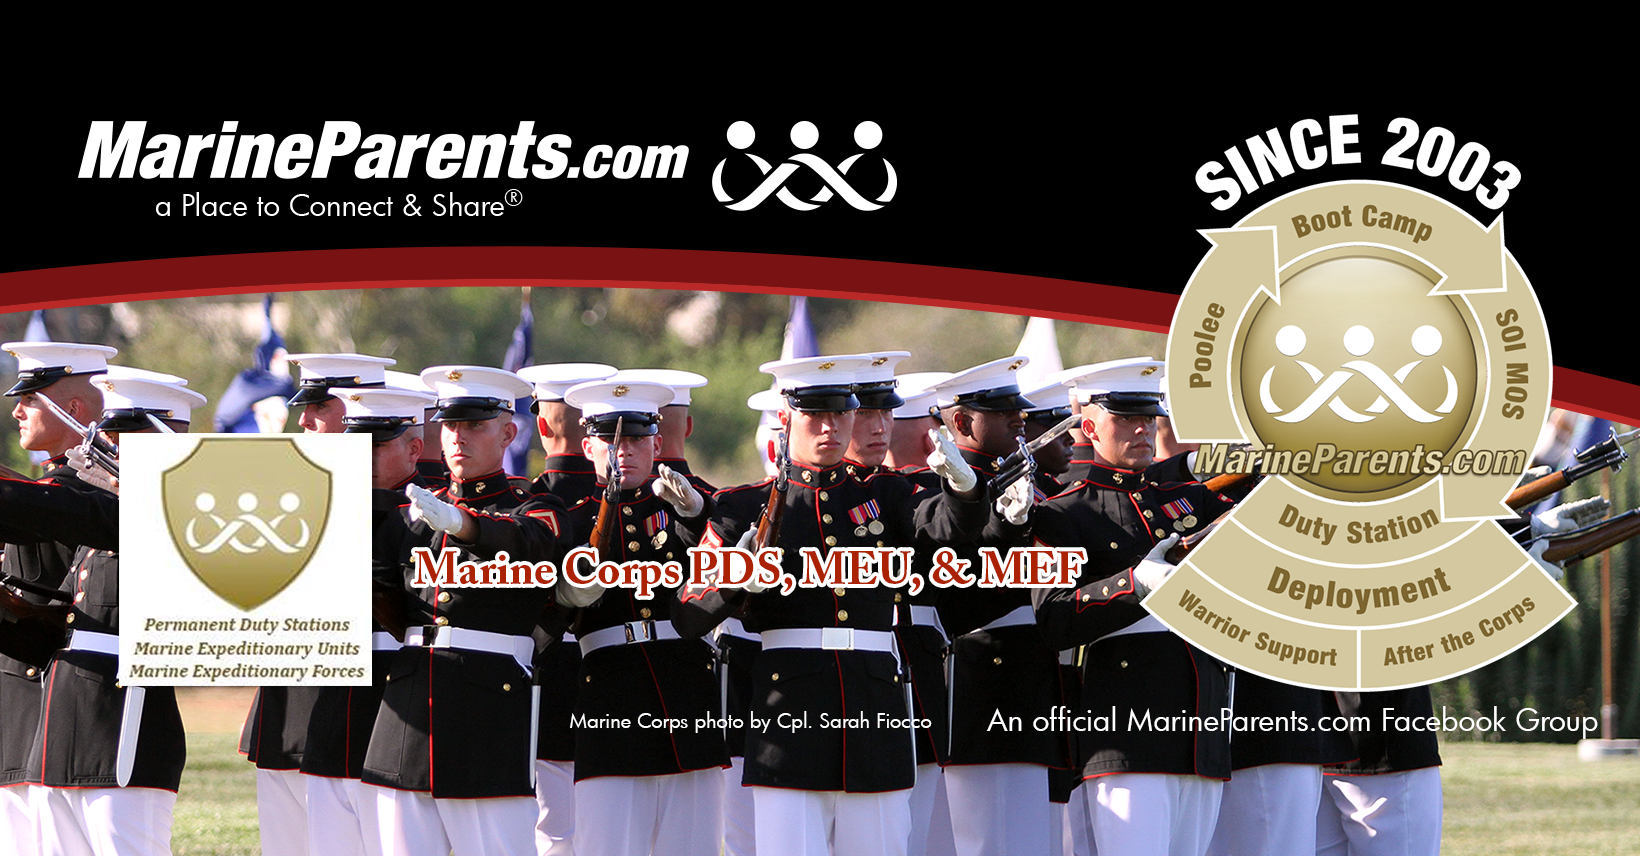 MarineParents.com default